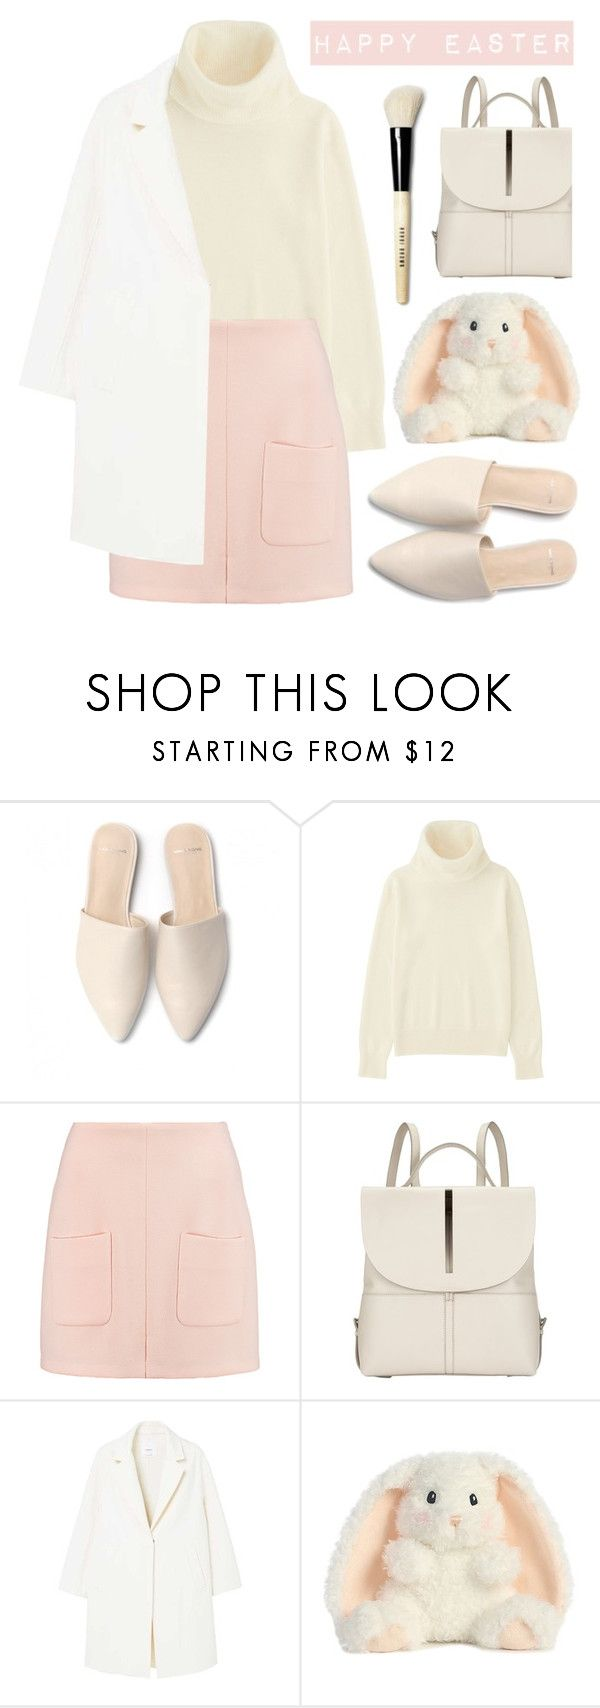 """""""Happy Easter"""" by vazsu ❤ liked on Polyvore featuring Uniqlo, See by Chloé, Kin by John Lewis, MANGO and Bobbi Brown Cosmetics"""